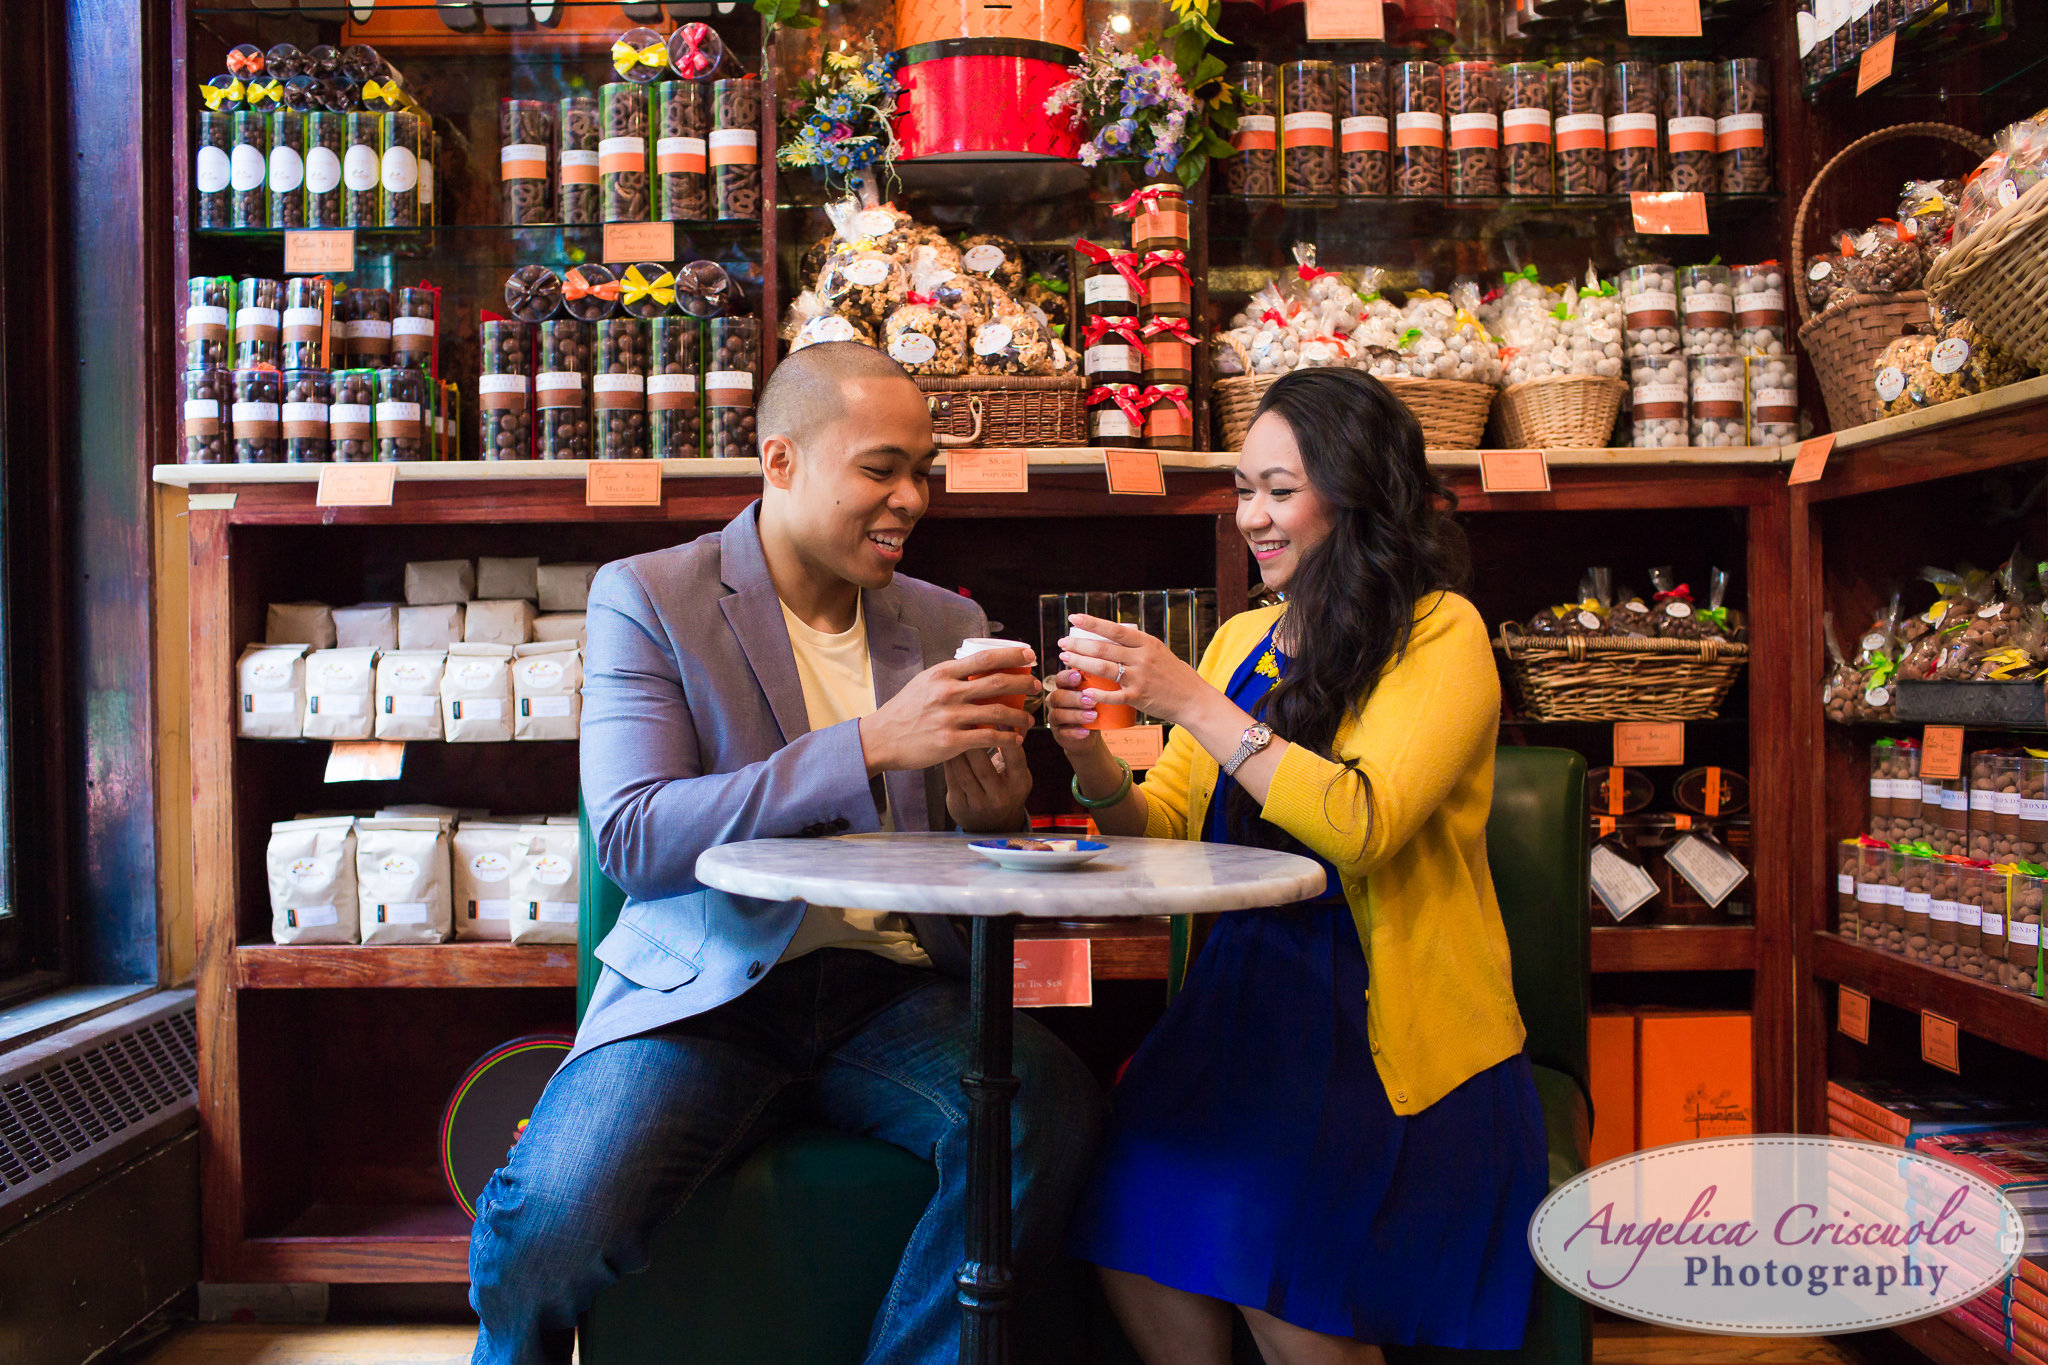 Jacques torres chocante engagement photos DUMBO Brooklyn New York Photographer Wedding